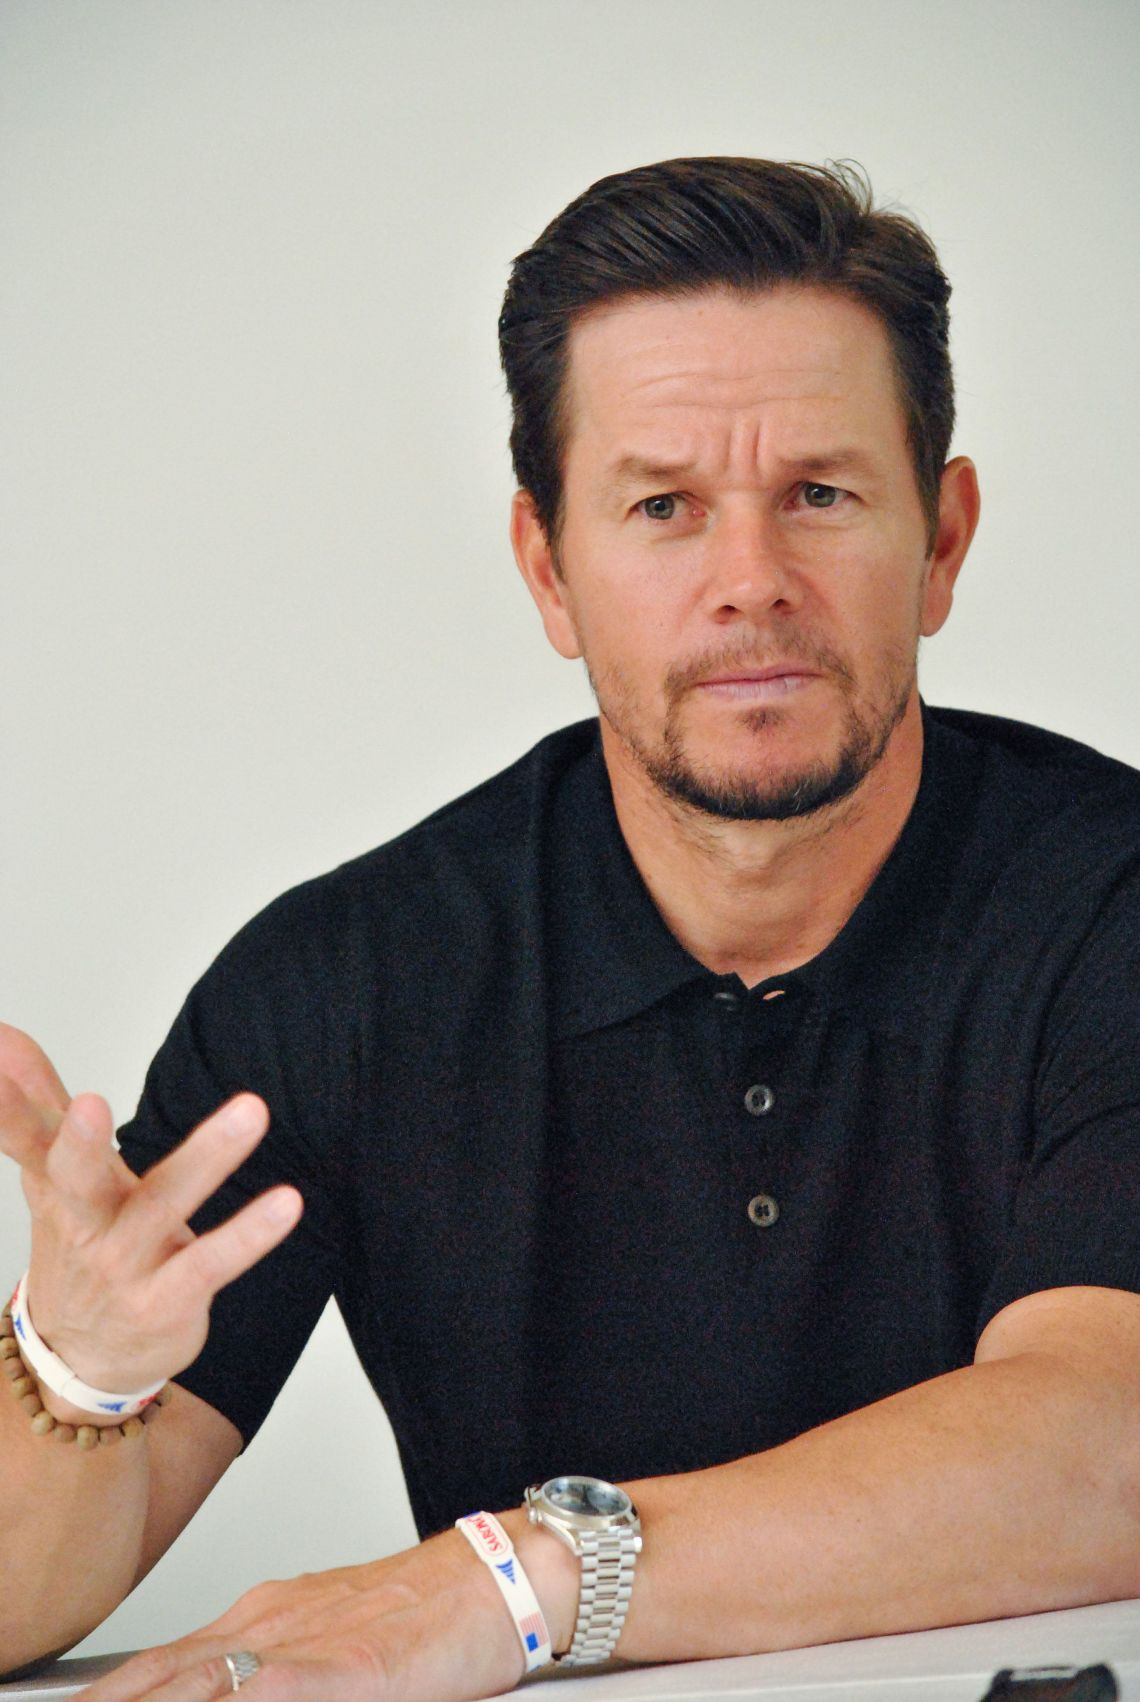 We Have So Many Questions About Mark Wahlberg's Daily Routine